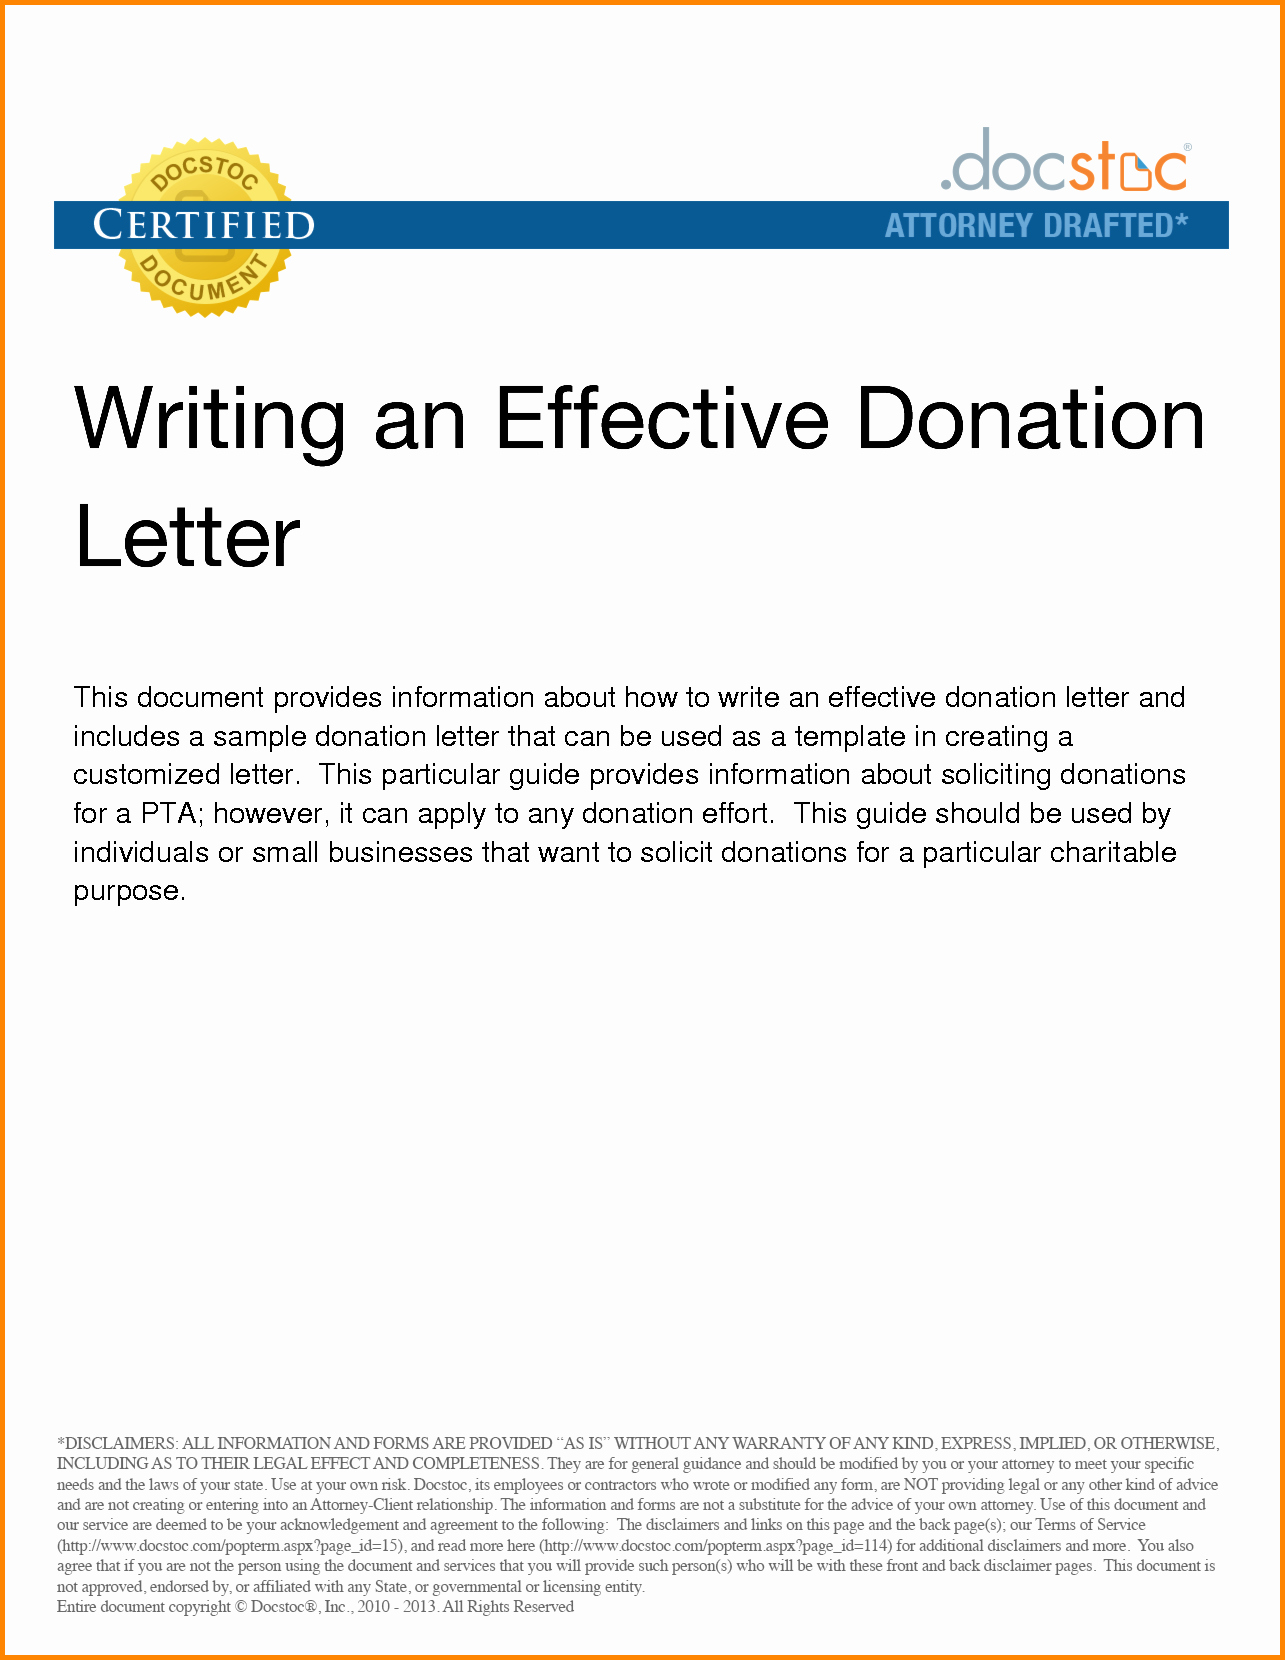 Request for Donations Letter Best Of Writing A Charitable Donation Letter